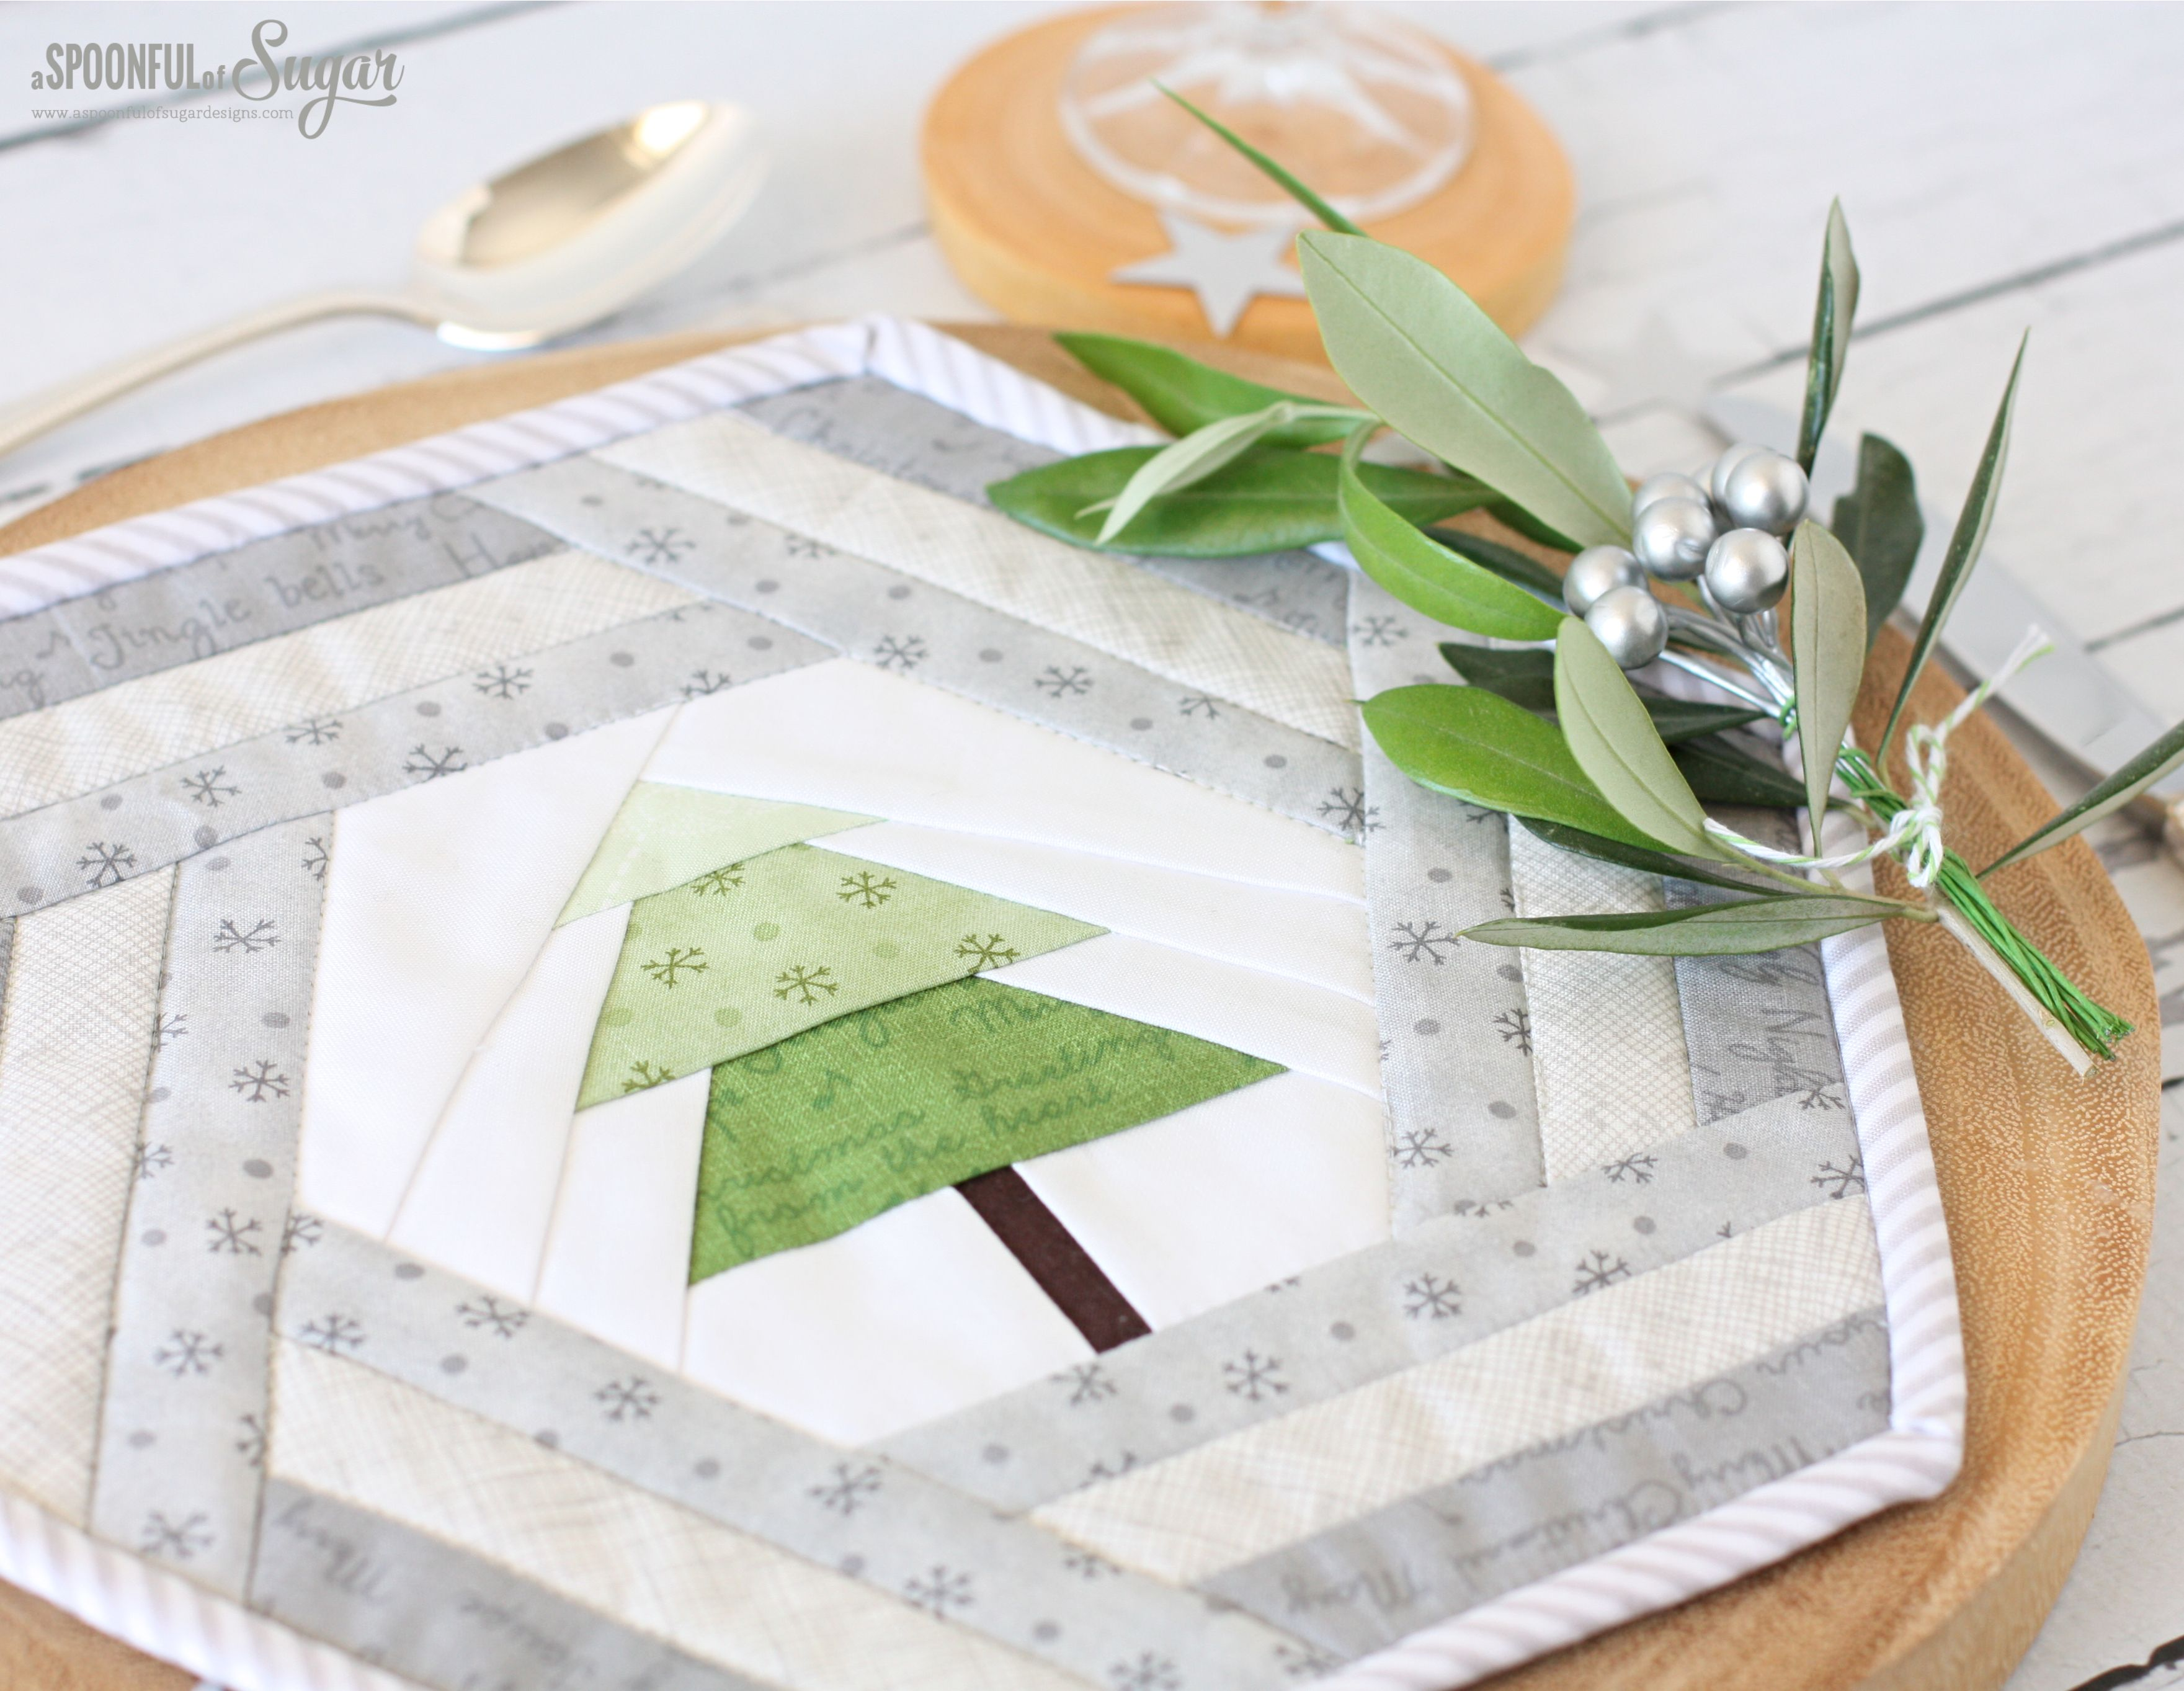 Christmas Placemat By The Perth Australia Mother Daughter Group Of A Spoonful Of Sugar Nice Christmas Quilting Projects Christmas Placemats Christmas Quilts